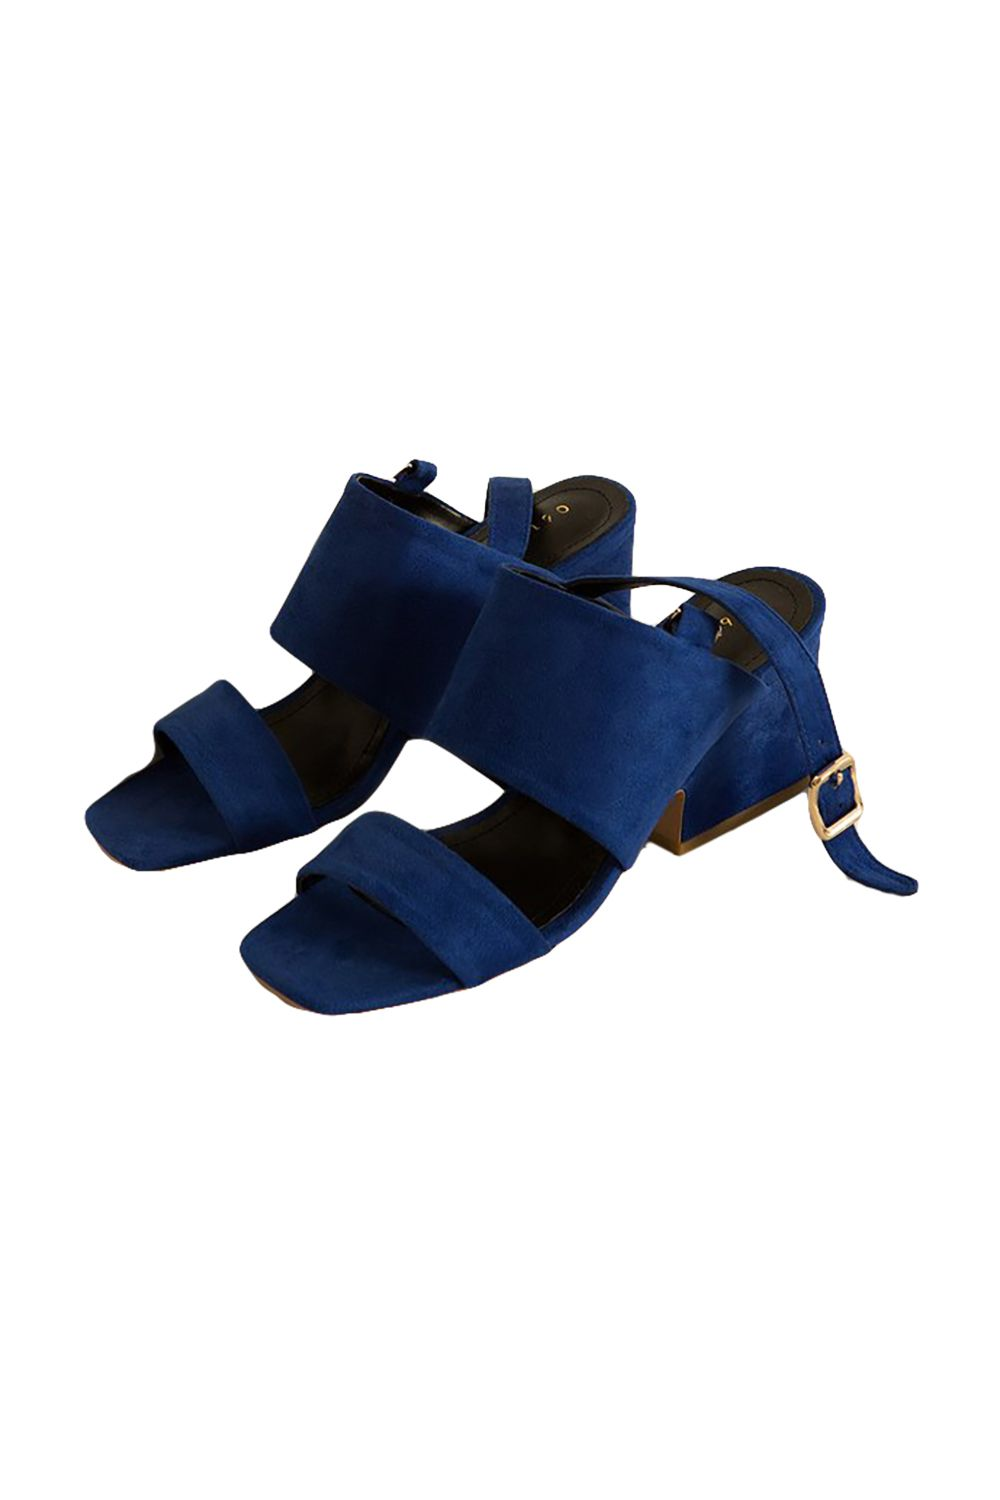 "<p>A walkable block-heel sandal in a shocking shade of cobalt.&nbsp&#x3B;</p><p>$82, <a href=""https://theloeil.com/collections/shoes/products/oleron-sandal-blue"" target=""_blank"" data-tracking-id=""recirc-text-link"">theloeil.com</a>.</p>"